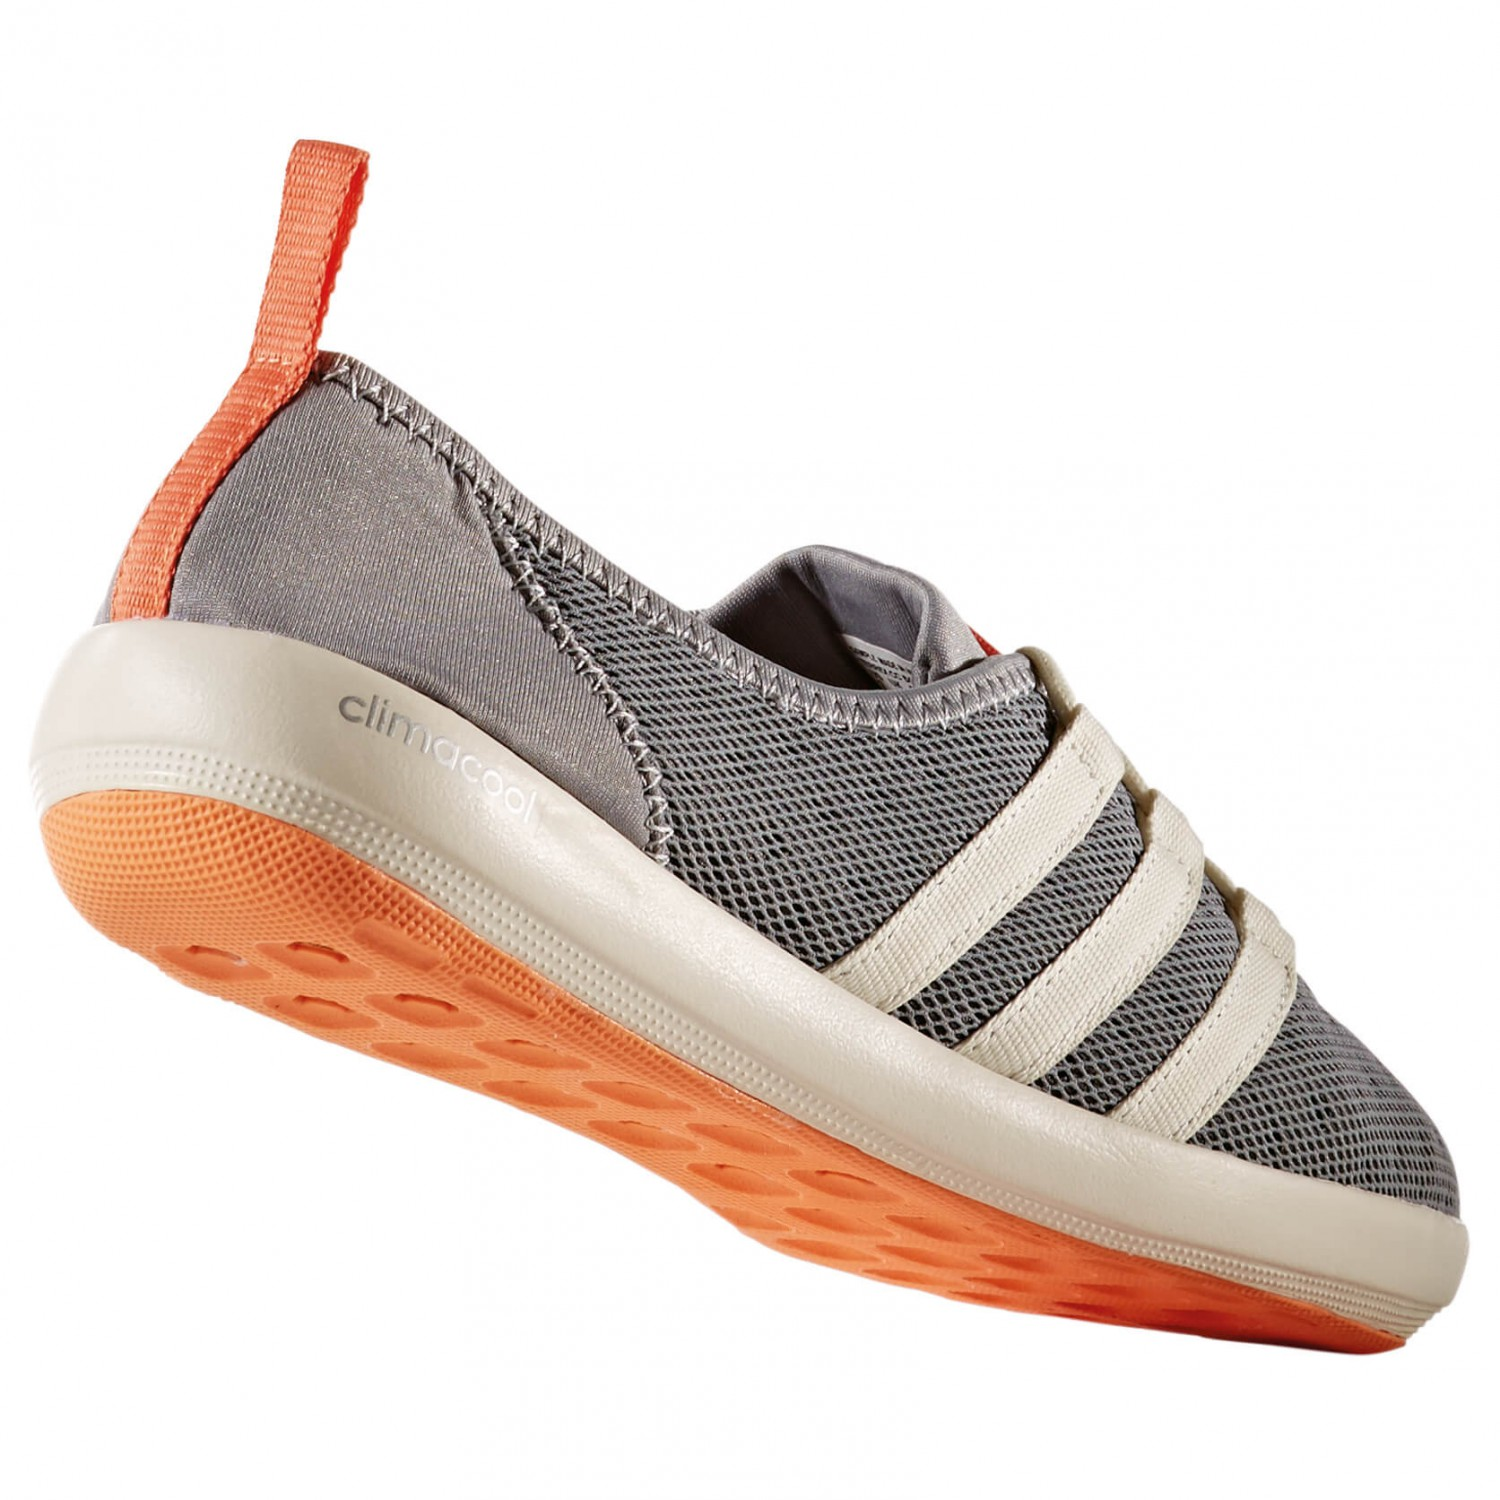 adidas Damen Terrex Cc Boat Sleek Sneakers